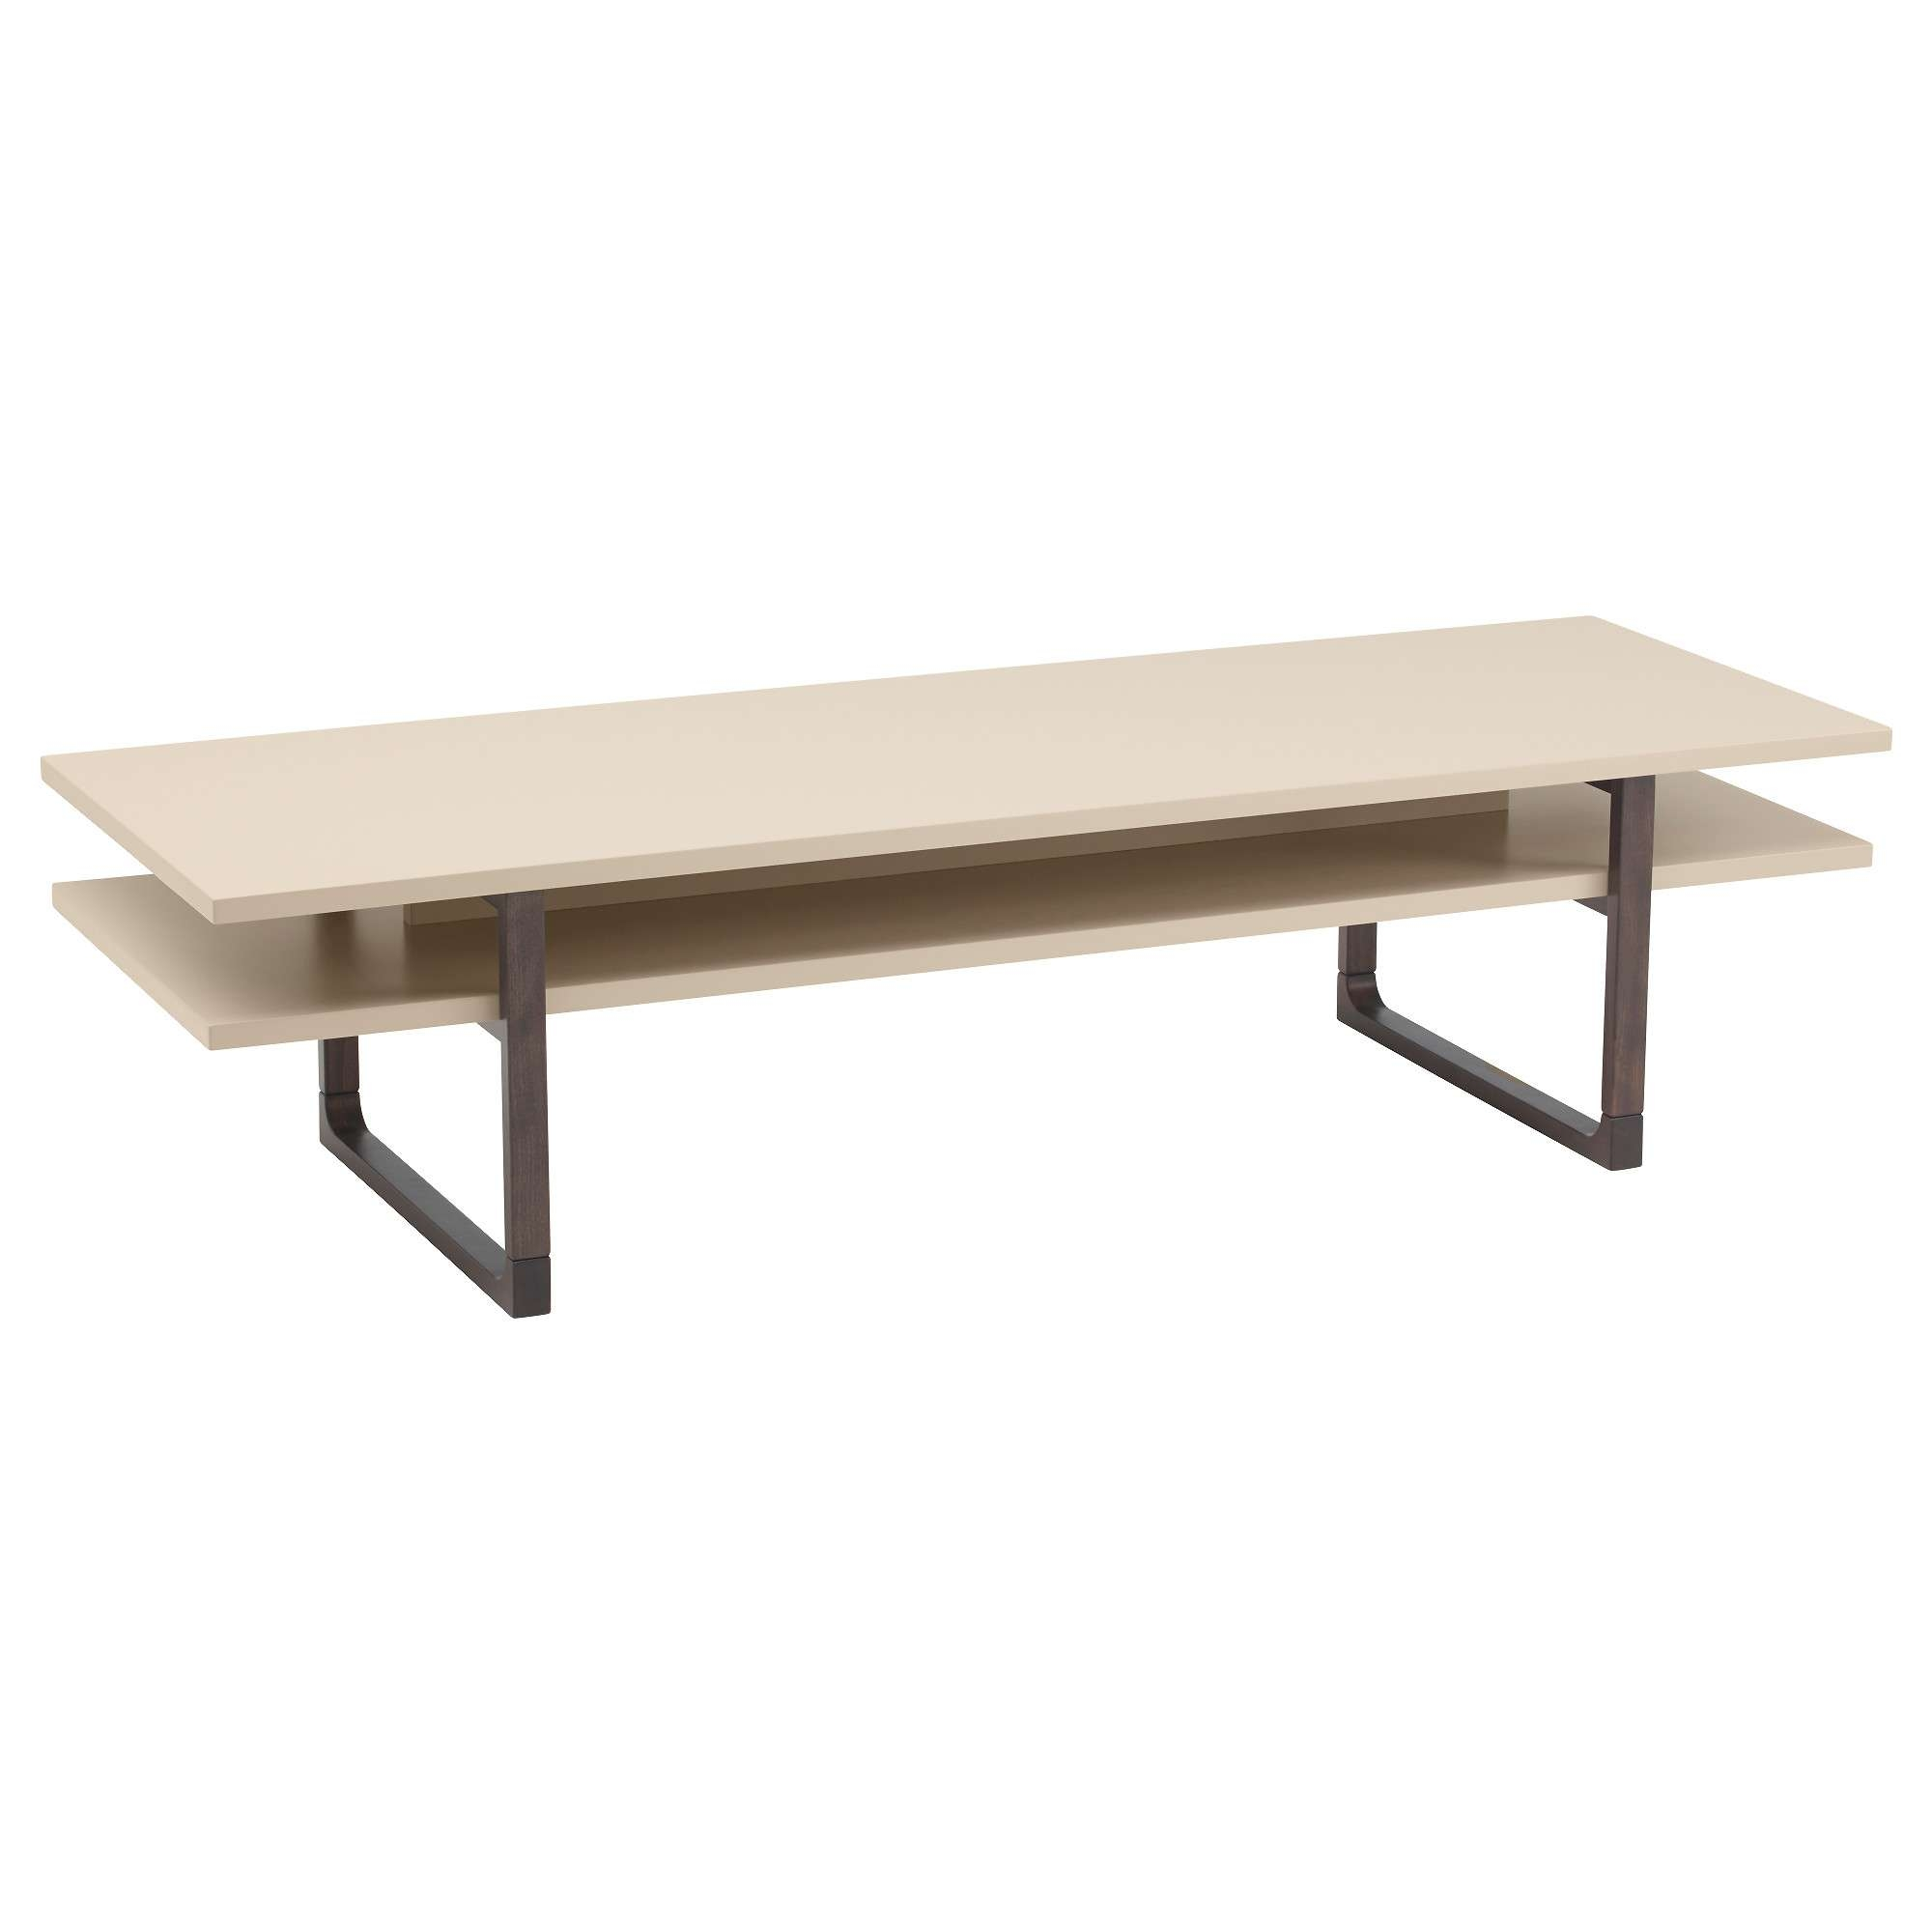 Favorite Rectangular Coffee Tables Pertaining To Rissna Coffee Table – Ikea (View 11 of 20)